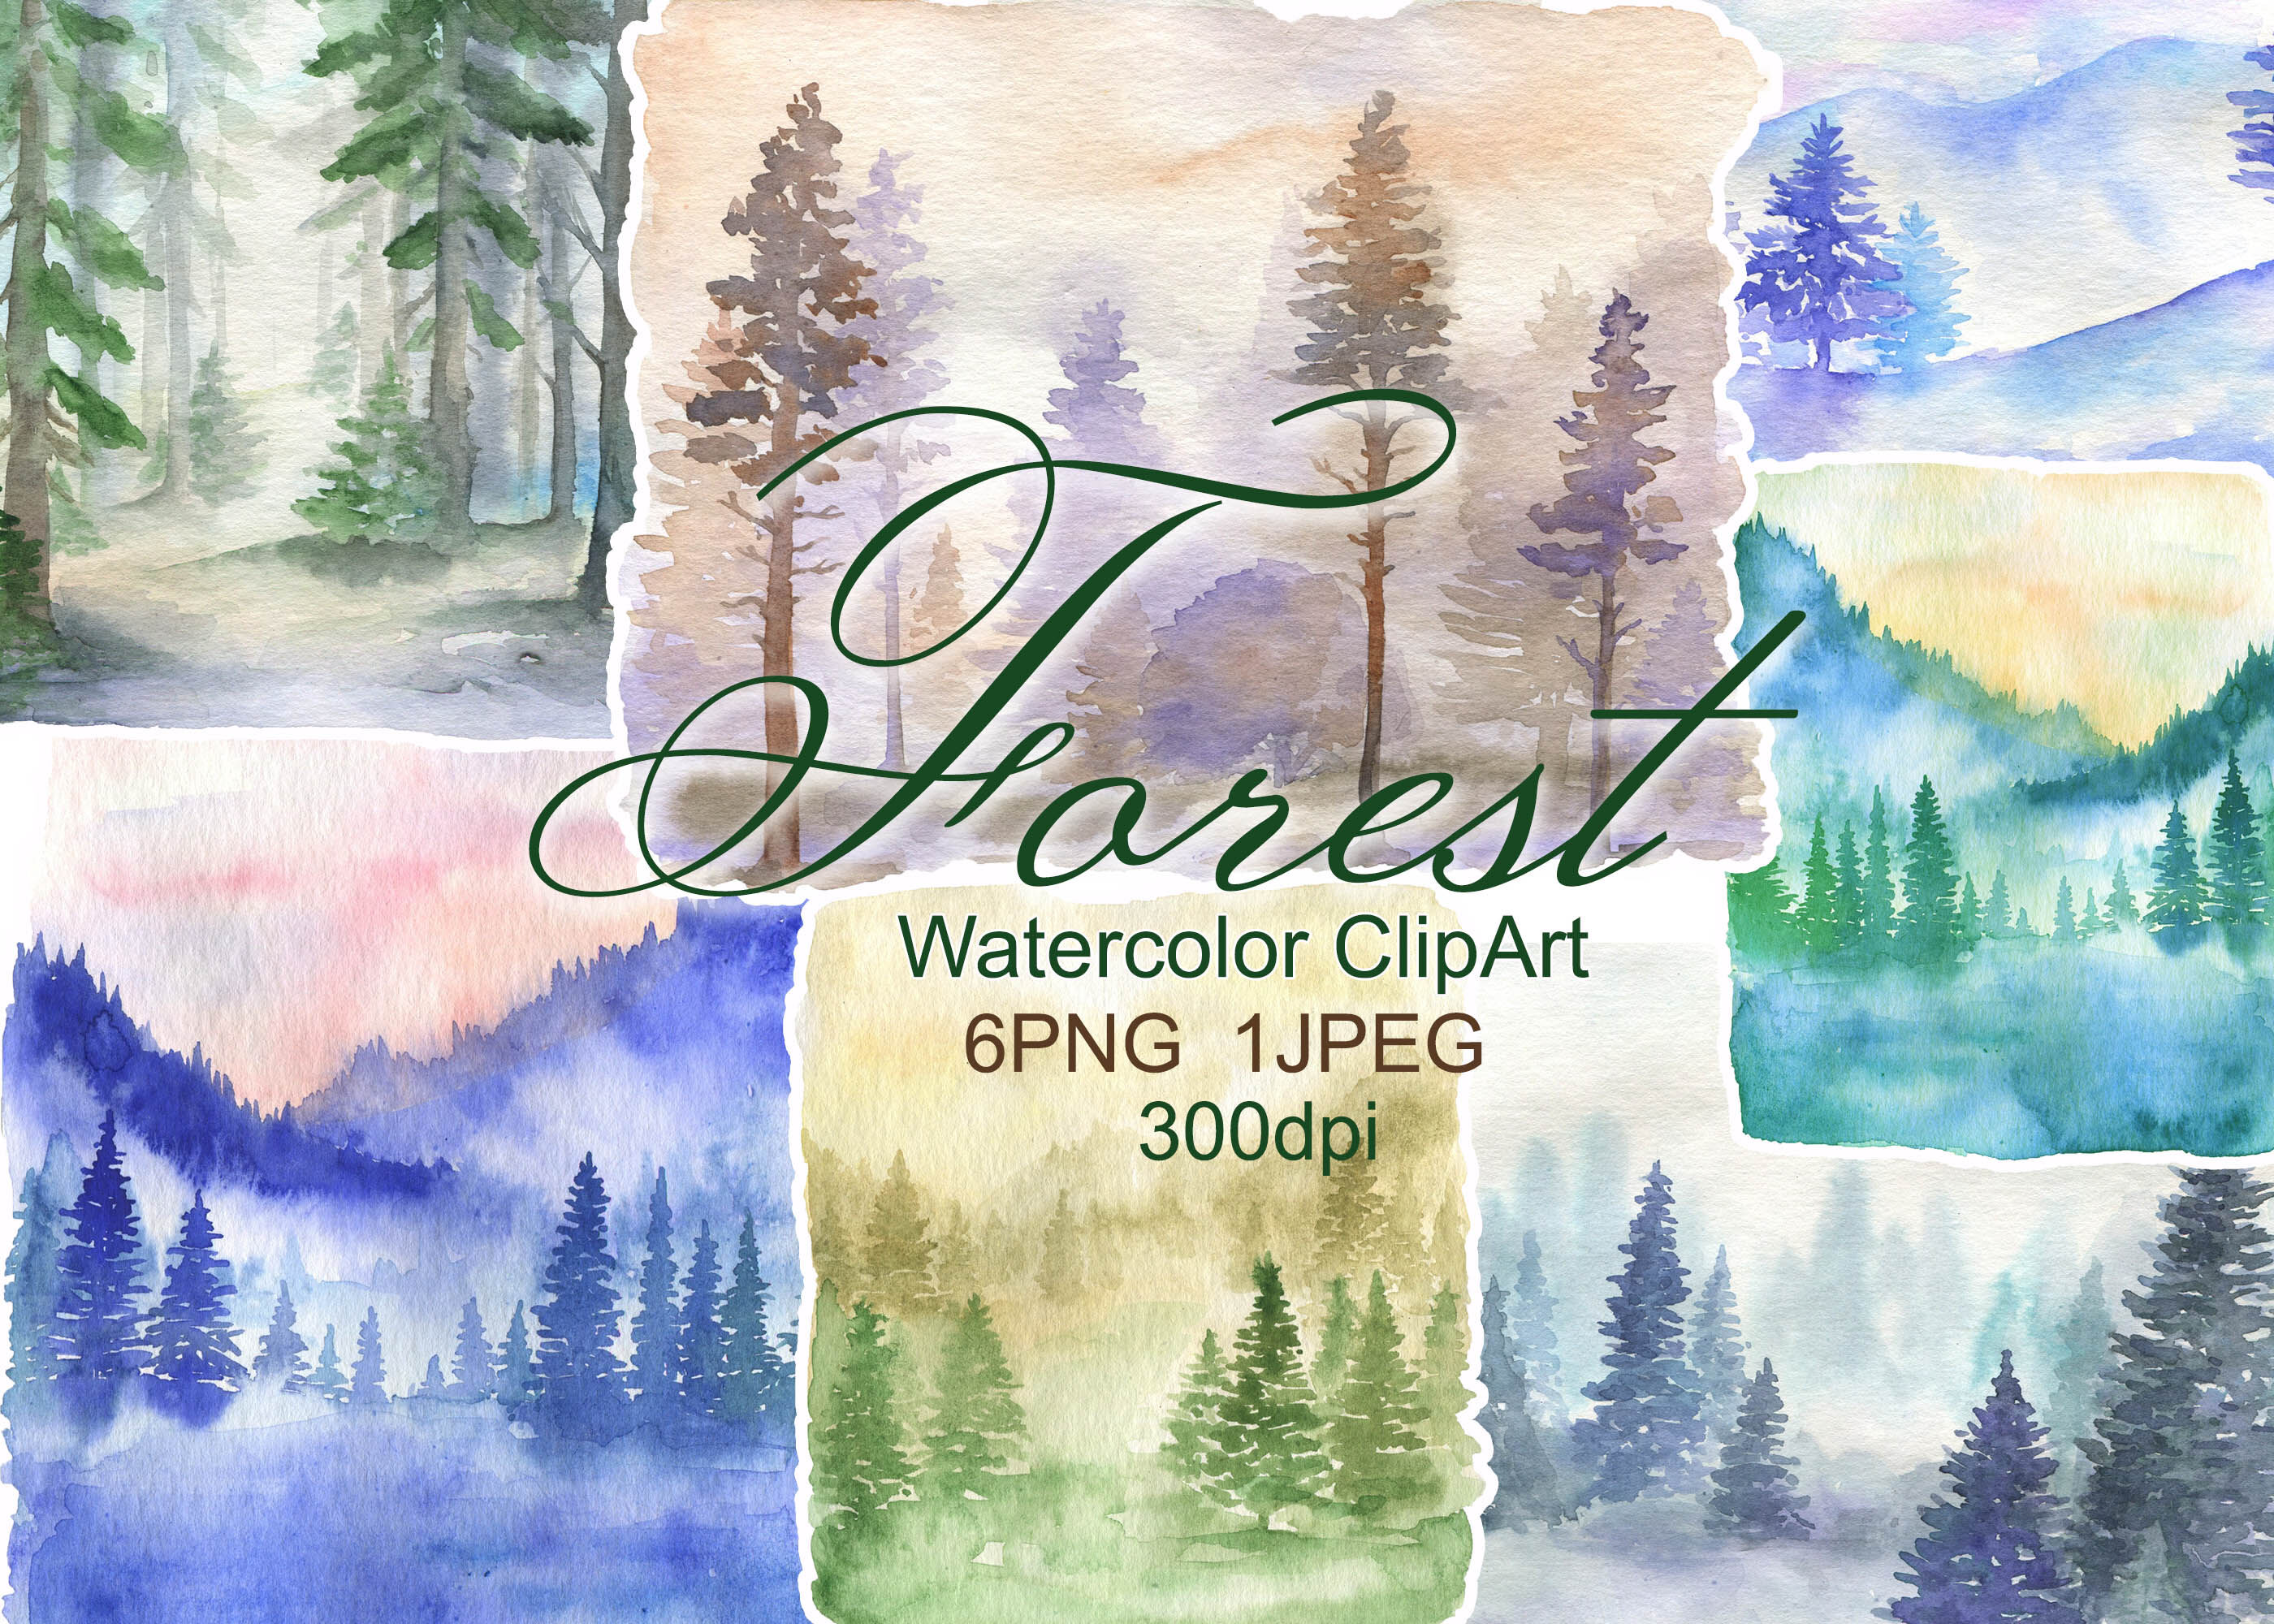 watercolor forest clipart landscape clip art background nature png by vilenaart thehungryjpeg com watercolor forest clipart landscape